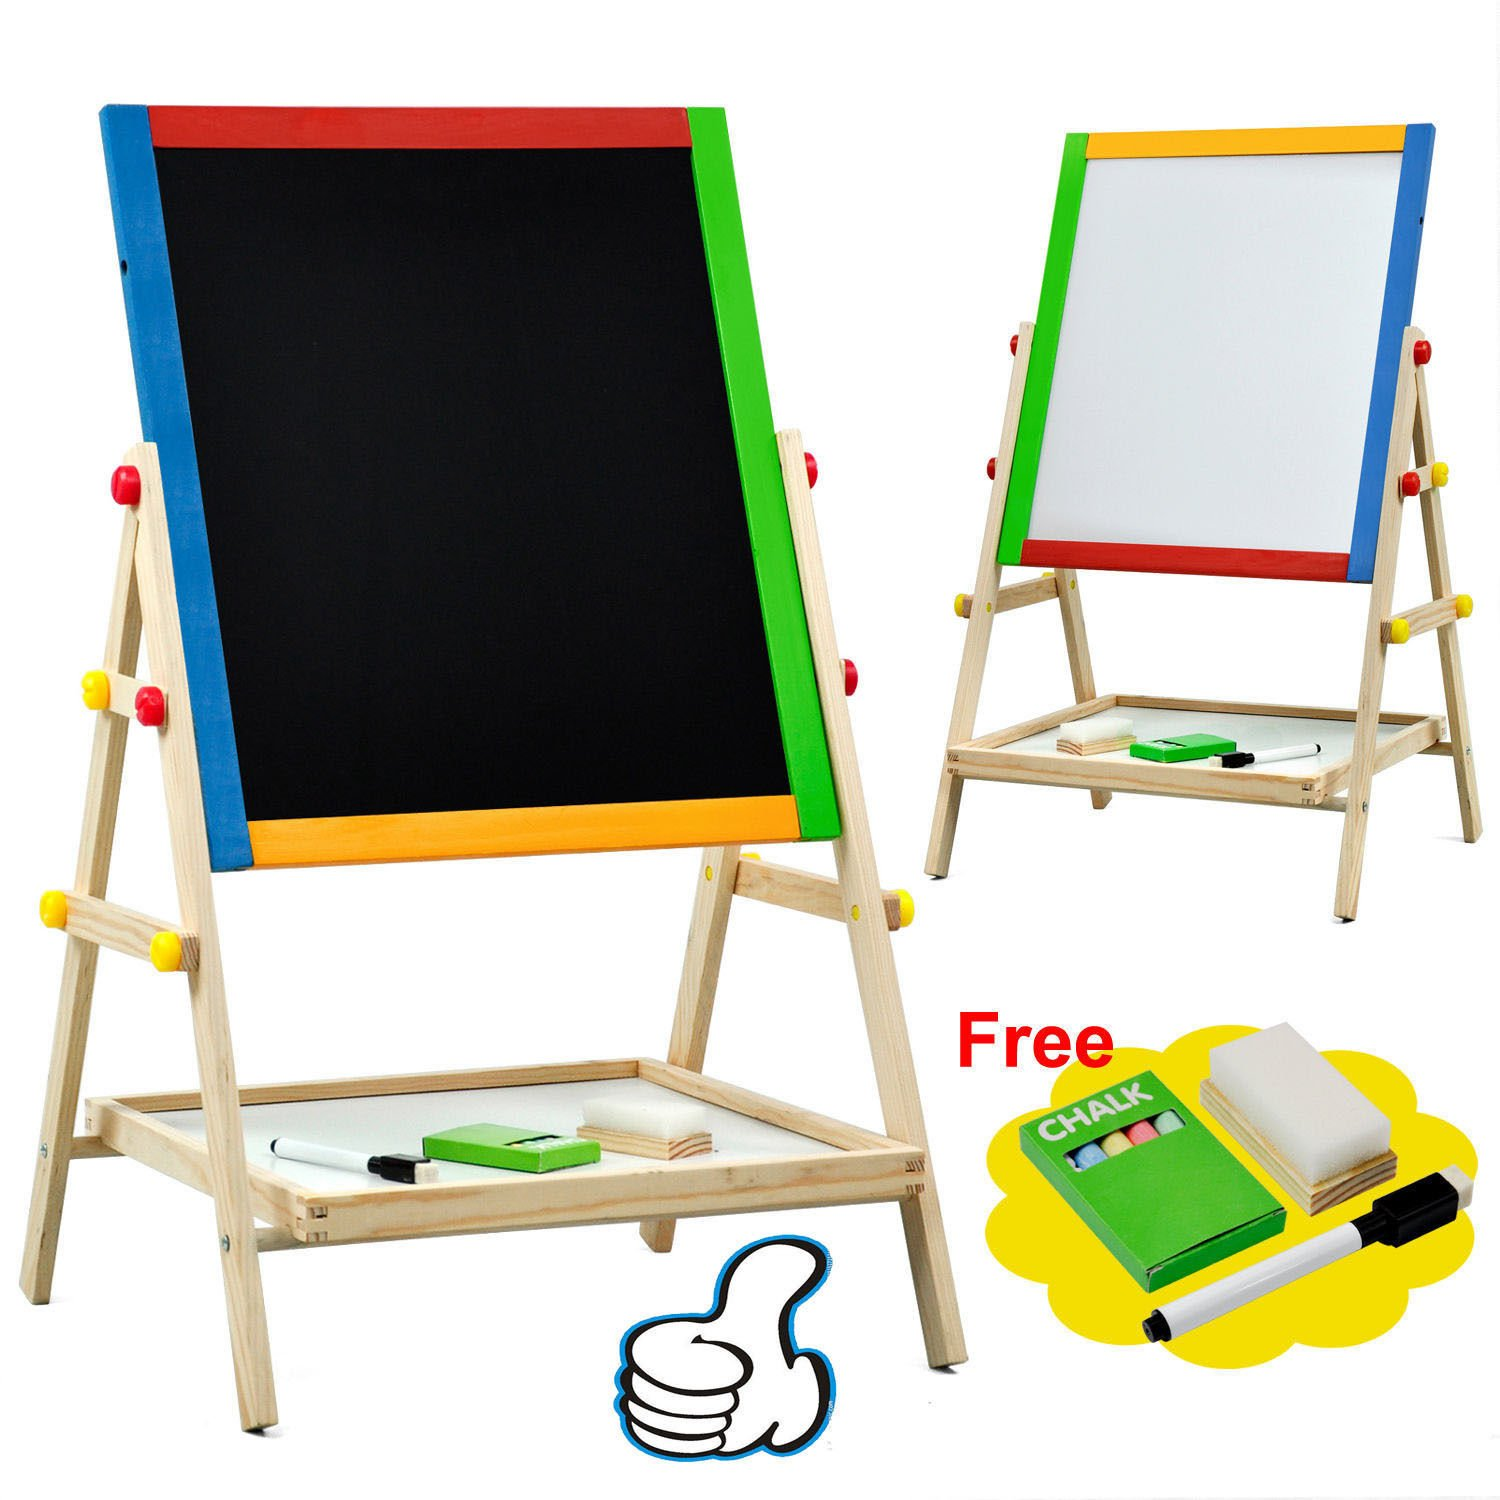 Large Adjustable Children Kids 2 In 1 Black White Wooden EaselDrawing Board by Worldpride1 (Image #1)